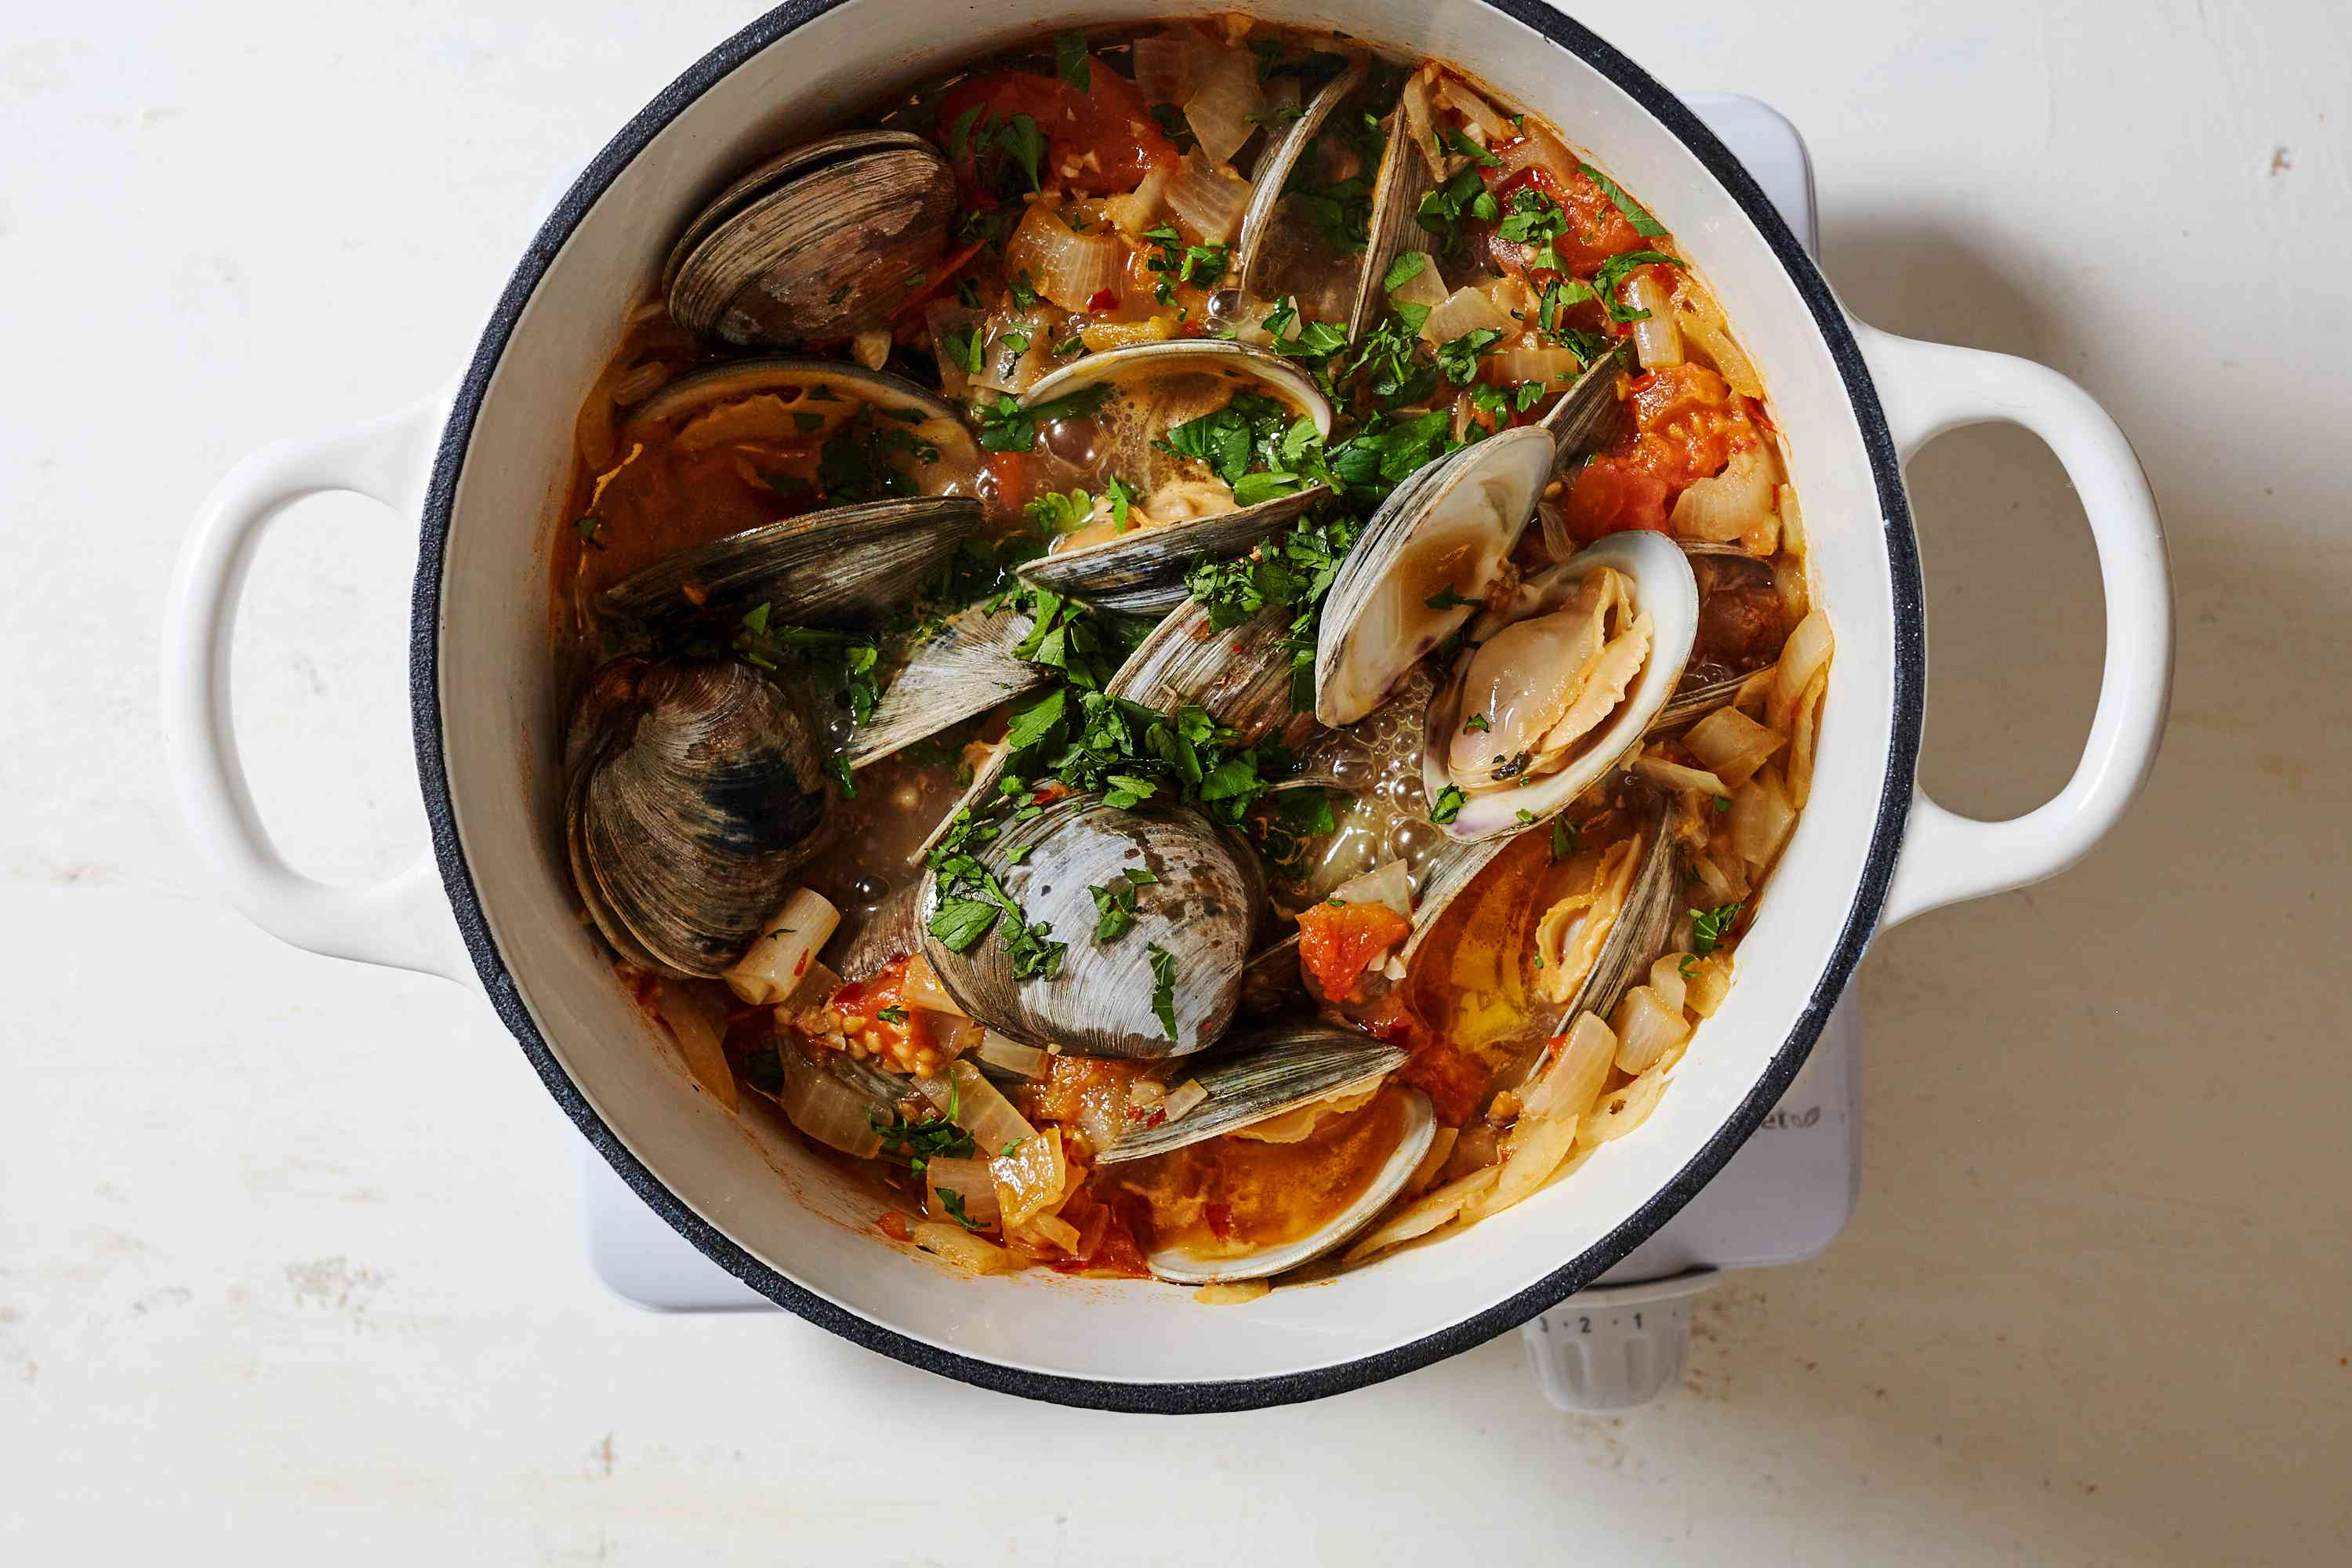 clams cooking in the pot with th esauce